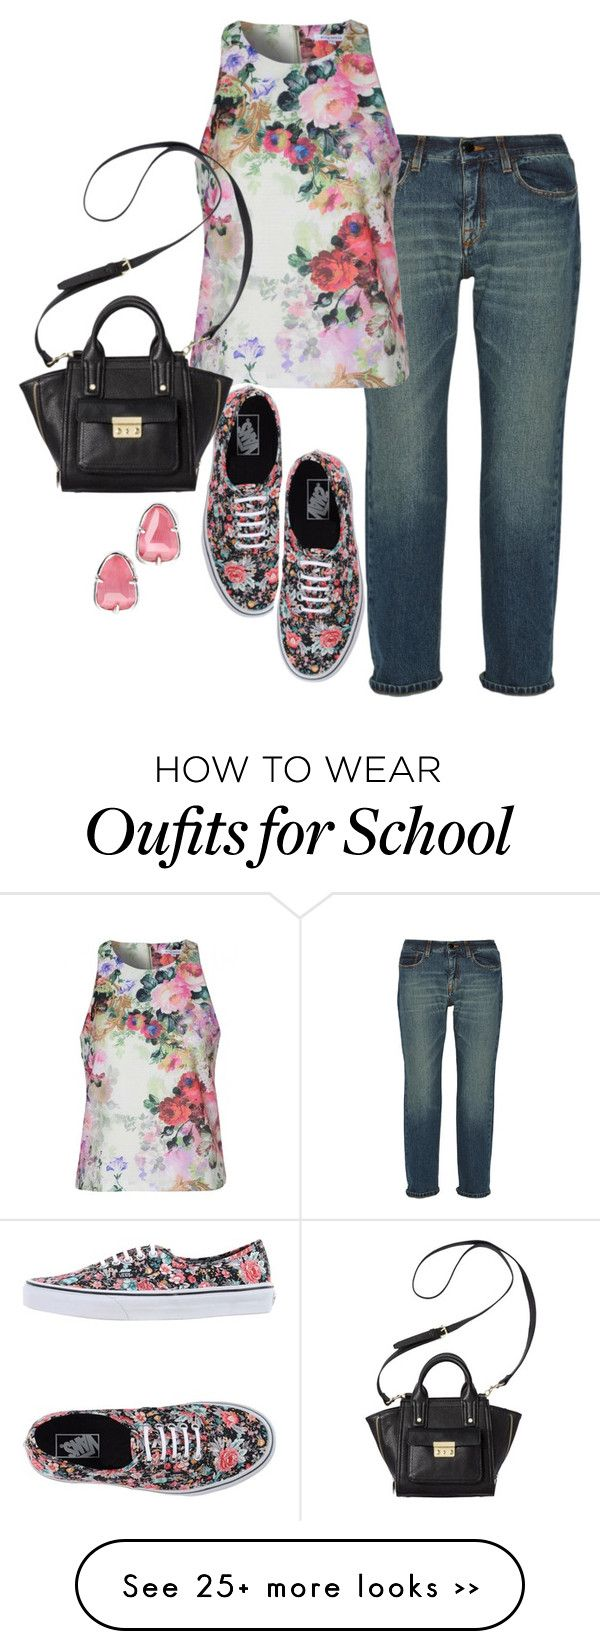 """walking my baby to school"" by trishica on Polyvore featuring dVb Victoria Beckham, Vans, 3.1 Phillip Lim and Kendra Scott"